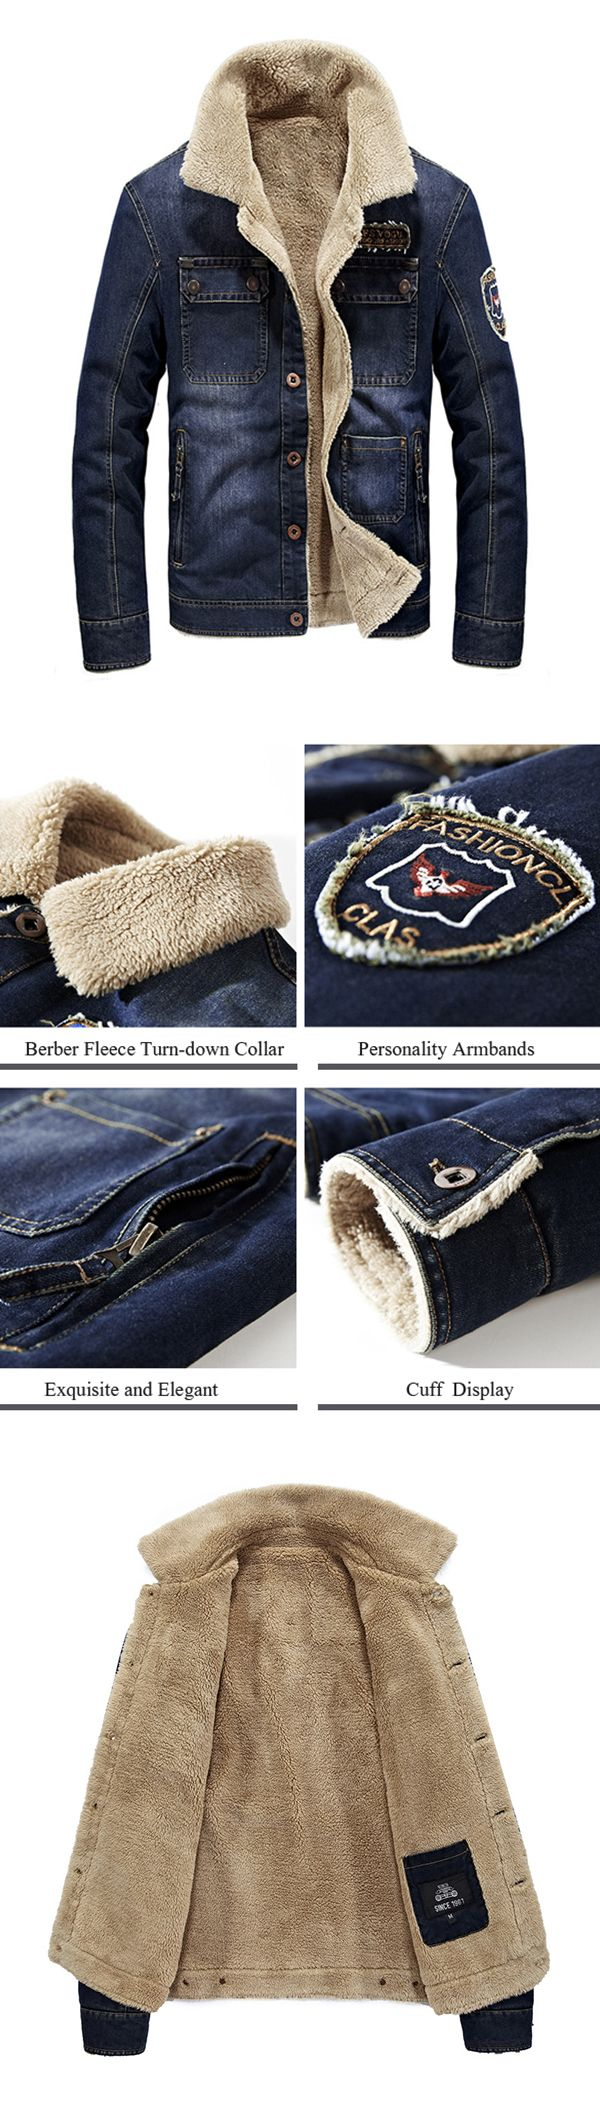 Outdoor Casual Outfit: Multi Pockets Denim Jackets for Men FREE 5-Minute Video Reveals How To Lose Weight Without EVER Dieting AGAIN!